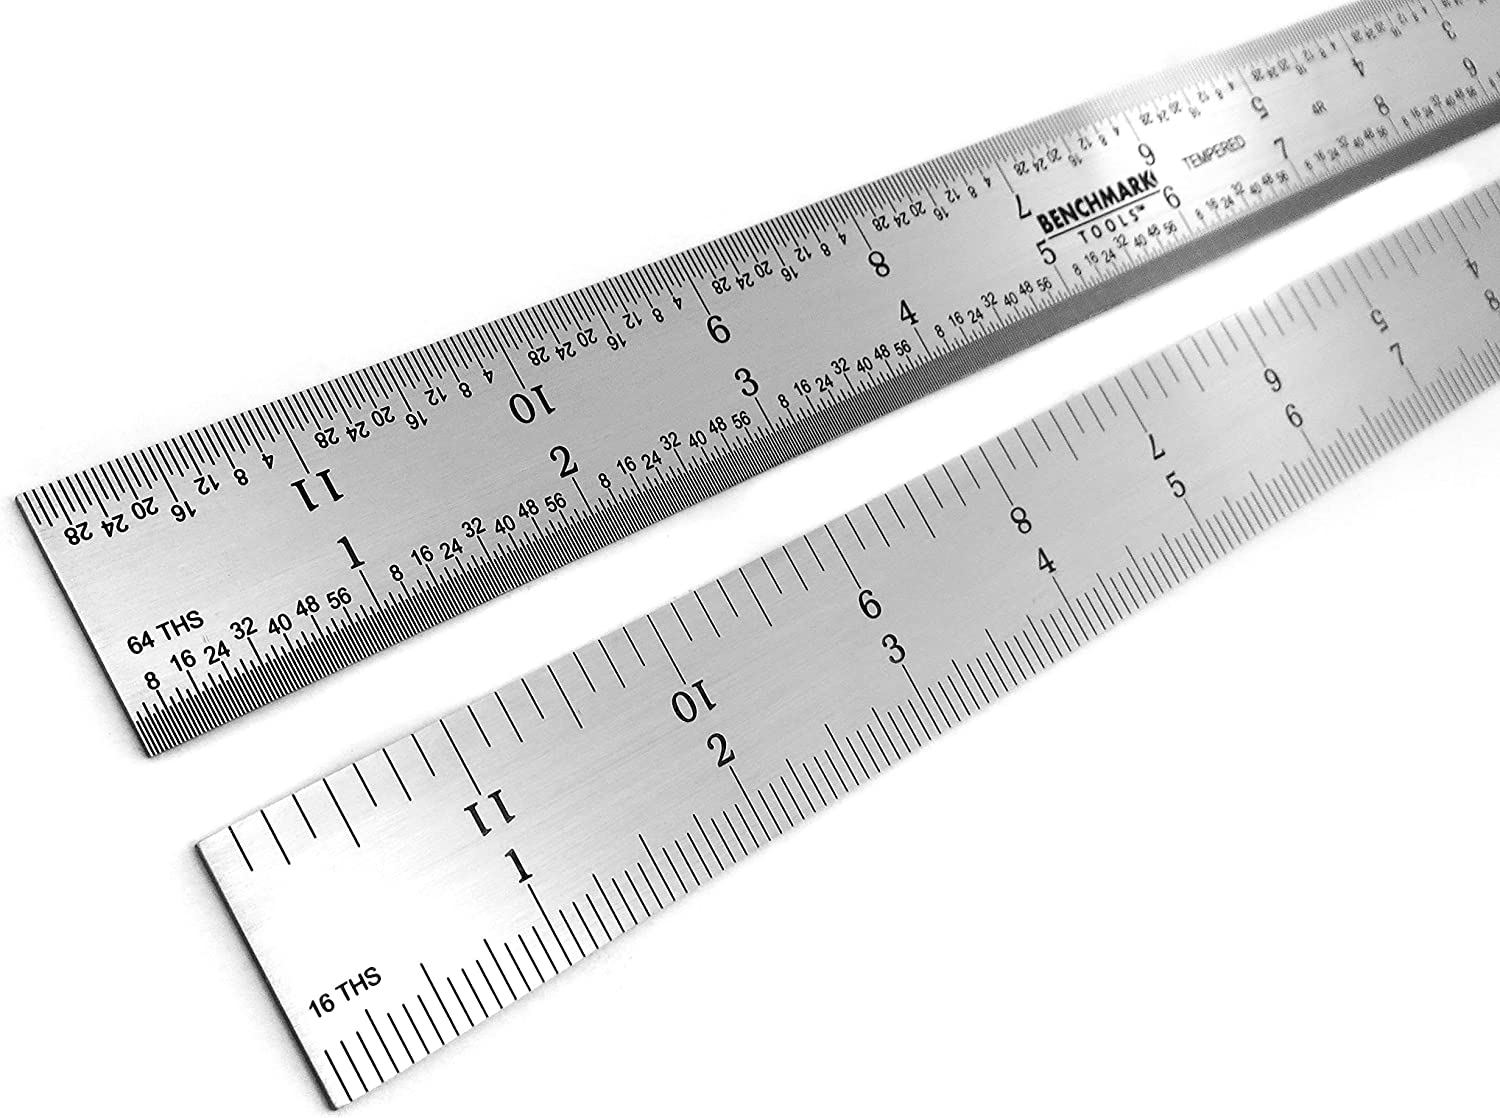 Benchmark Tools 466729 Rigid 4R 12 Inch Rigid 4R Machinist Rule with 1//8 1 1//16 1//32 and 1//64 Markings Tempered Stainless Steel with Brushed Finish Conforms to EEC-1 Accuracy Standards